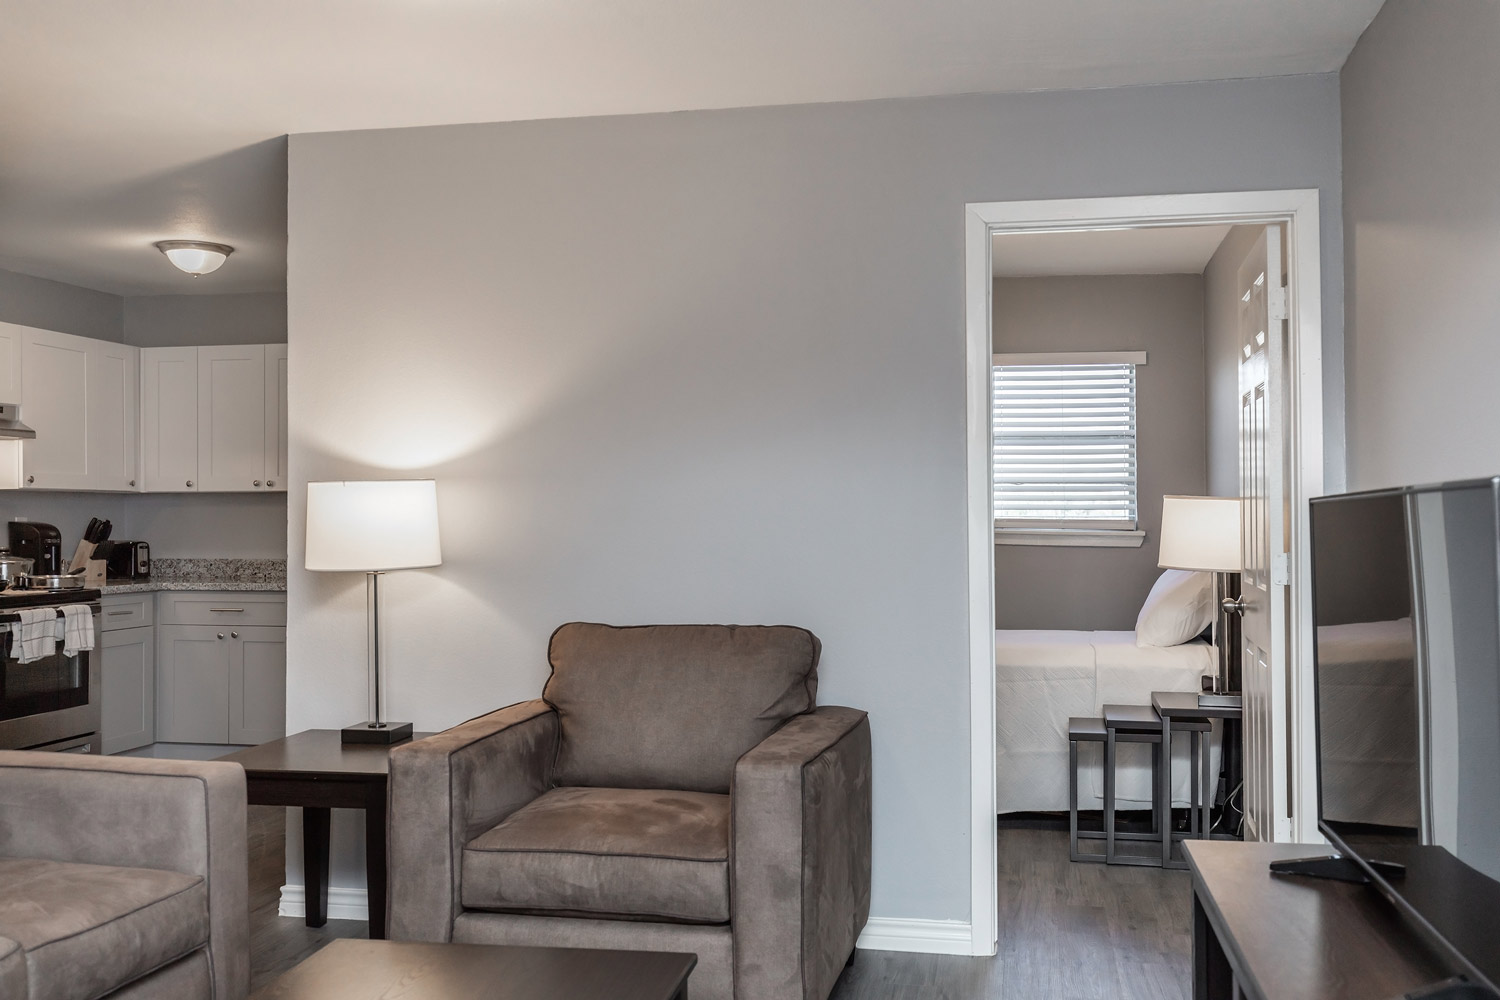 One Bedroom Apartments at The Five Points at Texas Apartments in Texas City, Texas